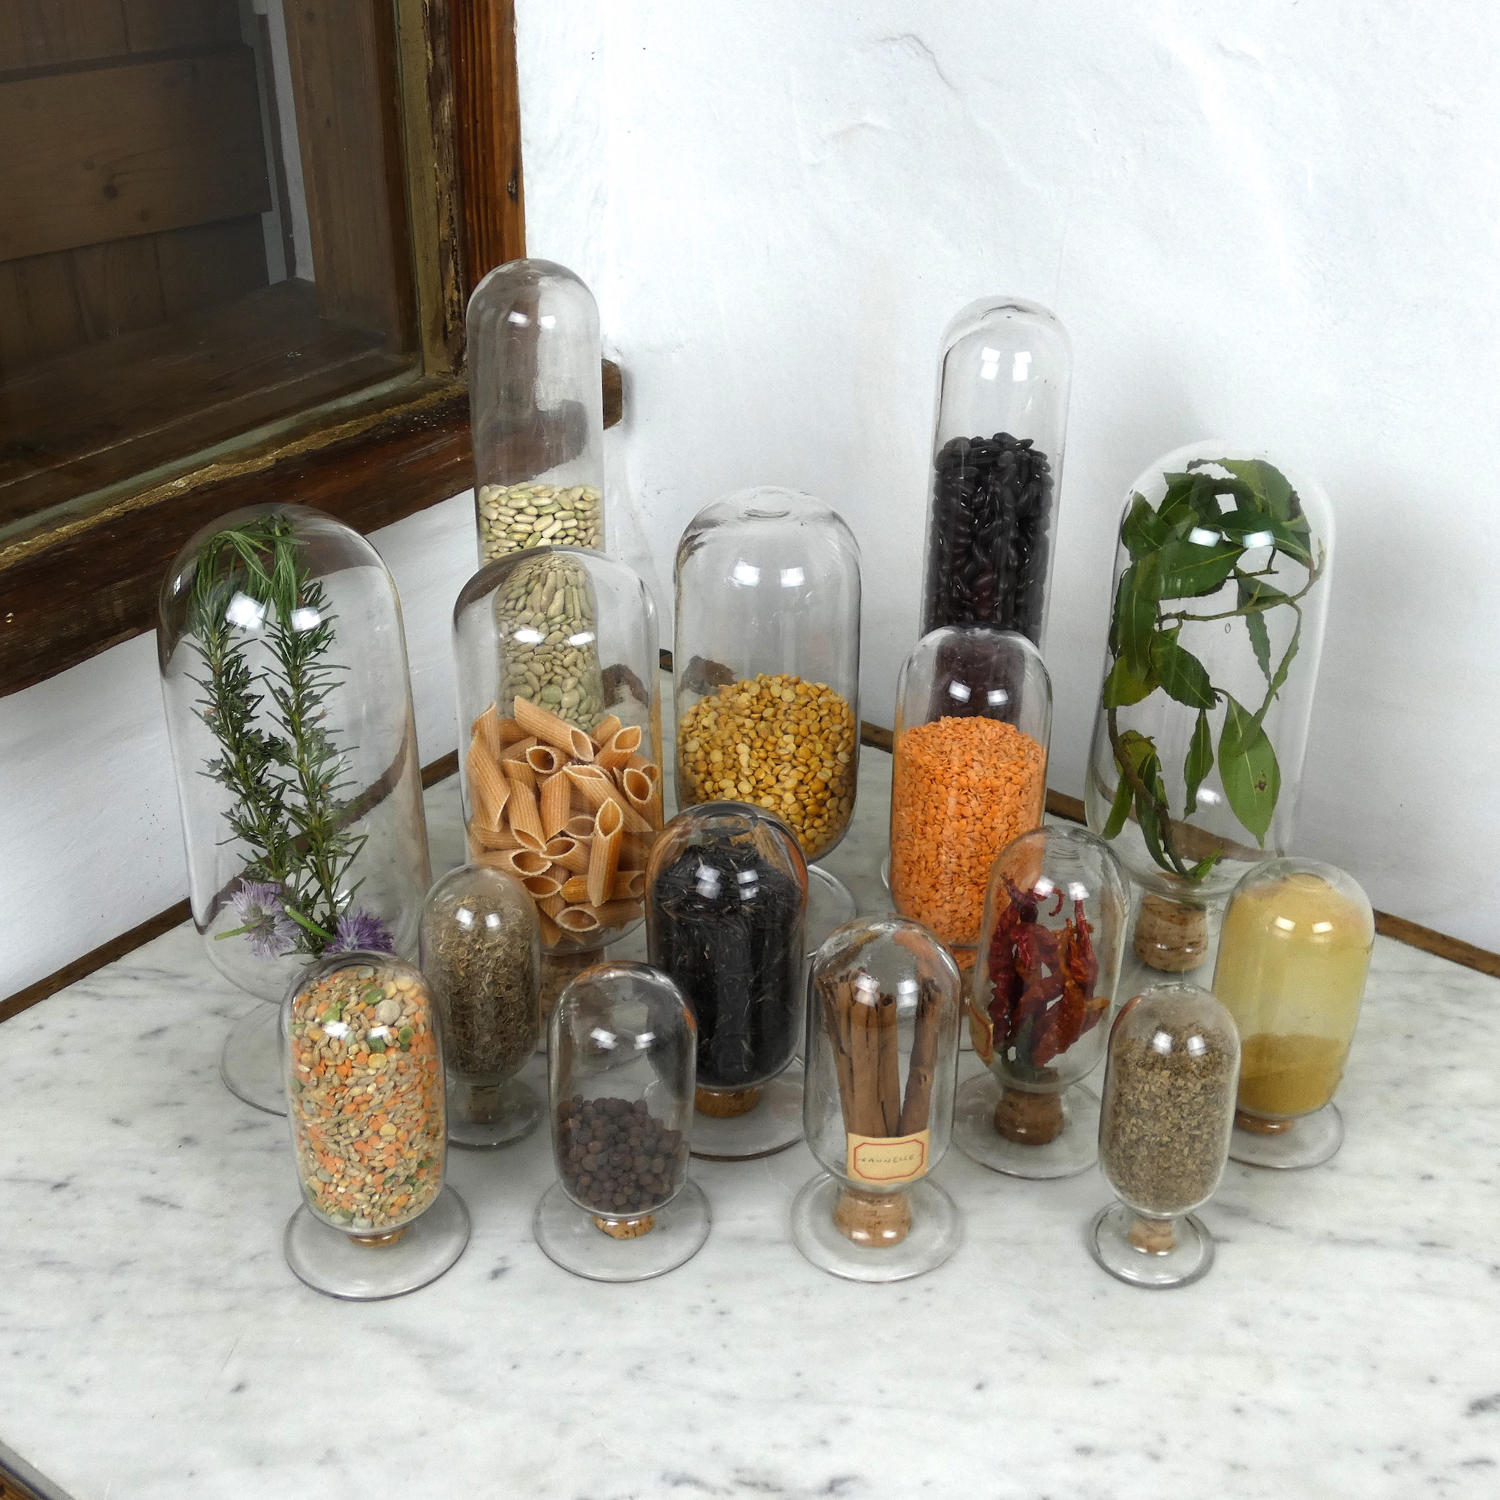 Shop Display Jars.